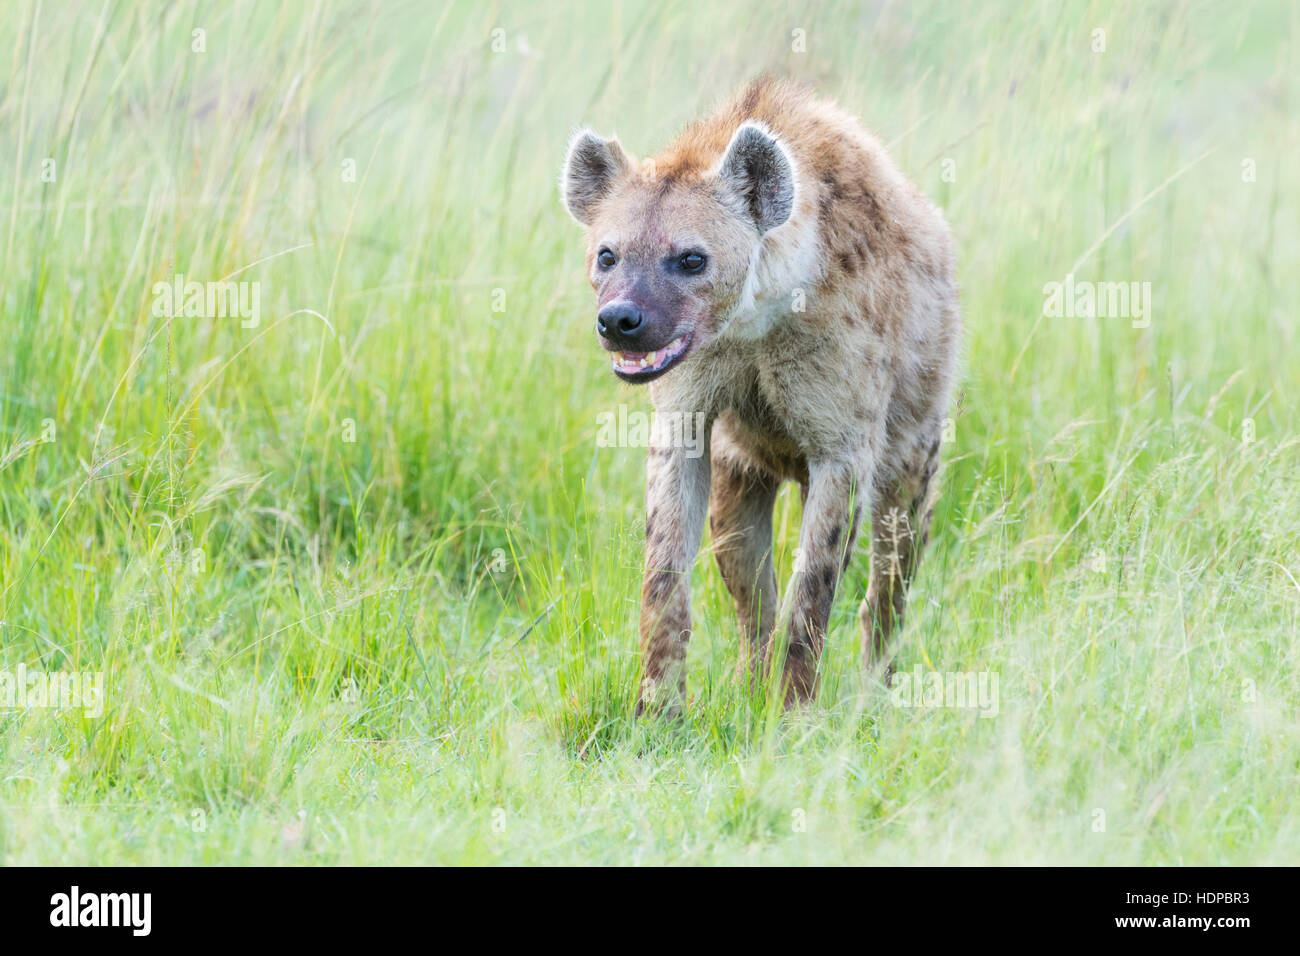 Spotted hyena (Crocuta crocuta) on savanna, Maasai Mara National Reserve, Kenya - Stock Image